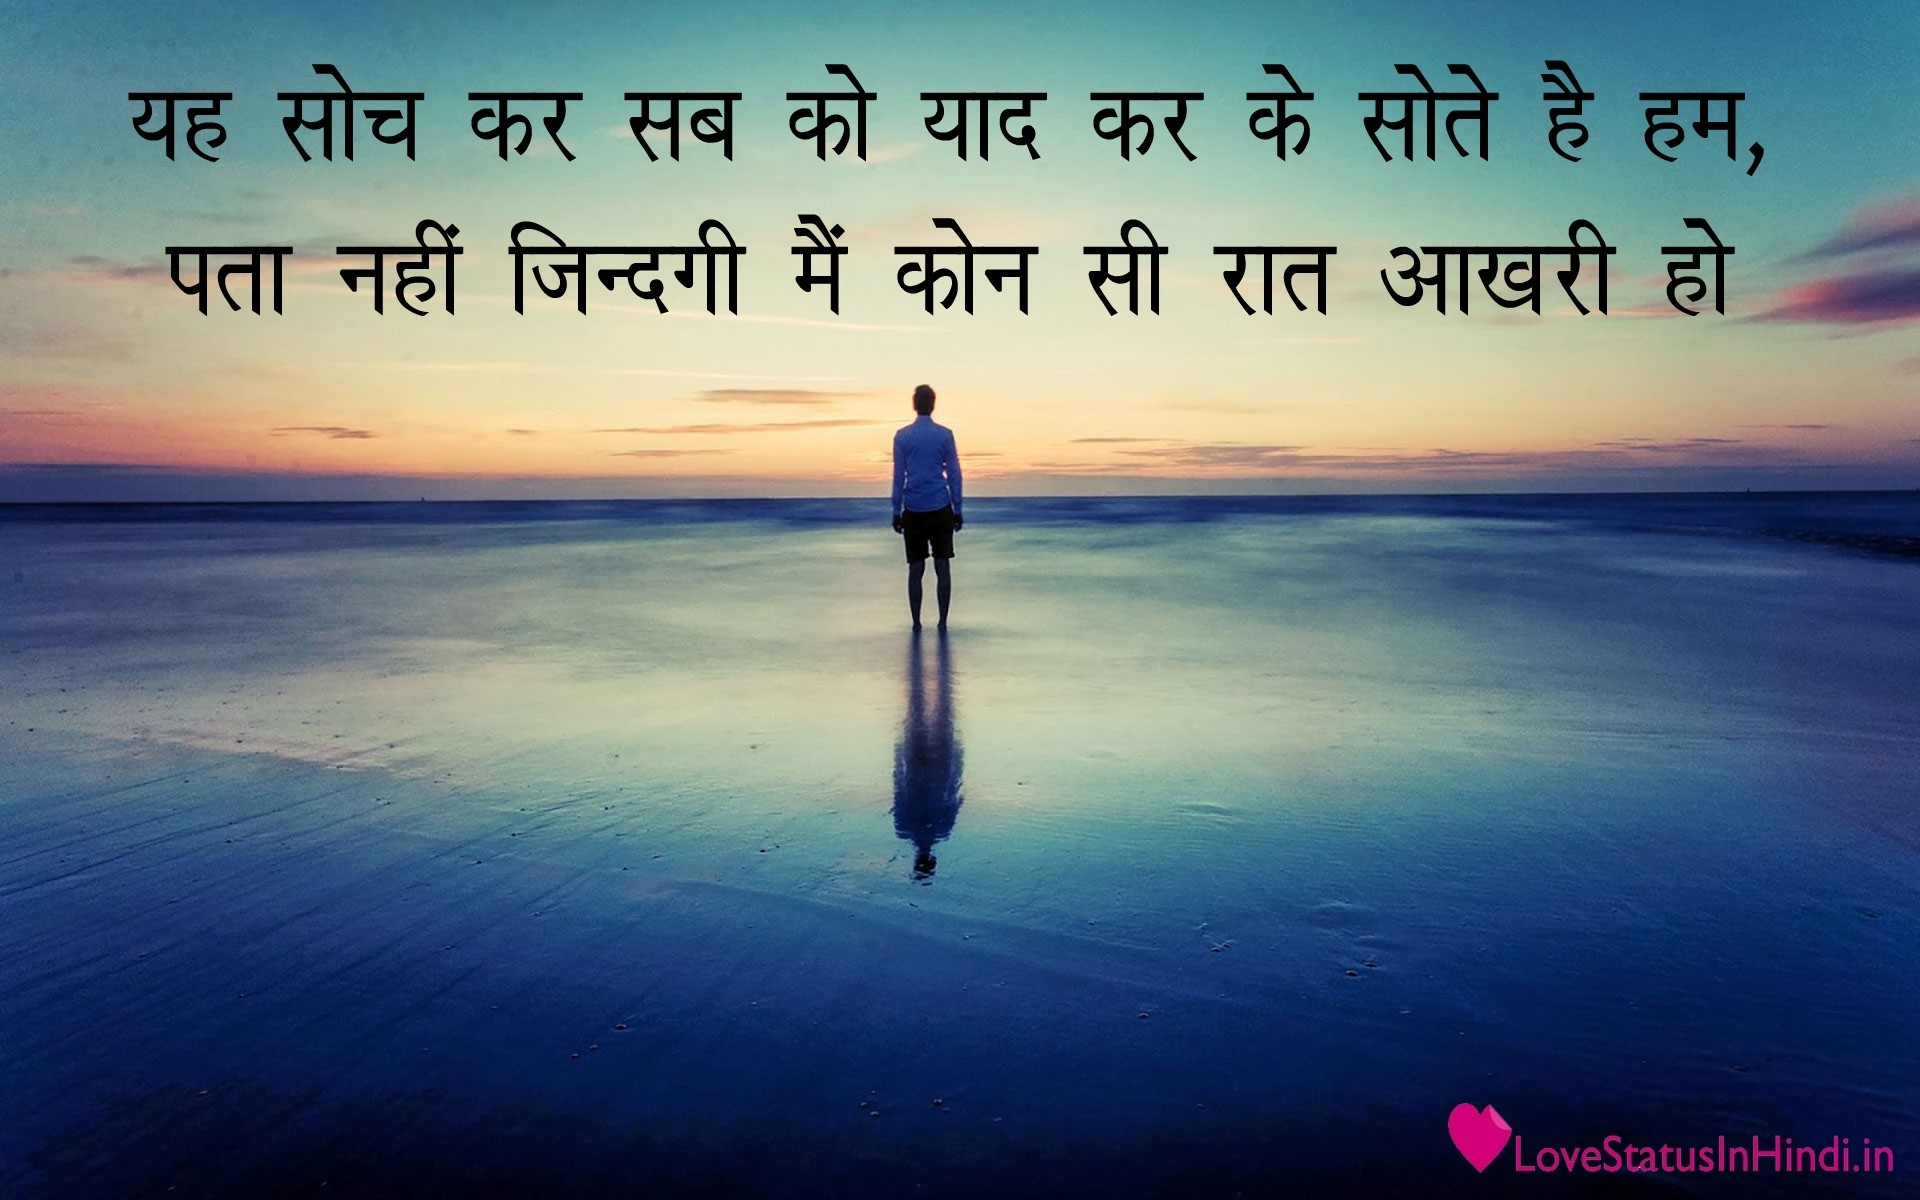 1920x1200 True Love Shayari By Hindi True Love Shayari In Hindi- Love Status In Hindi  - Love Status In